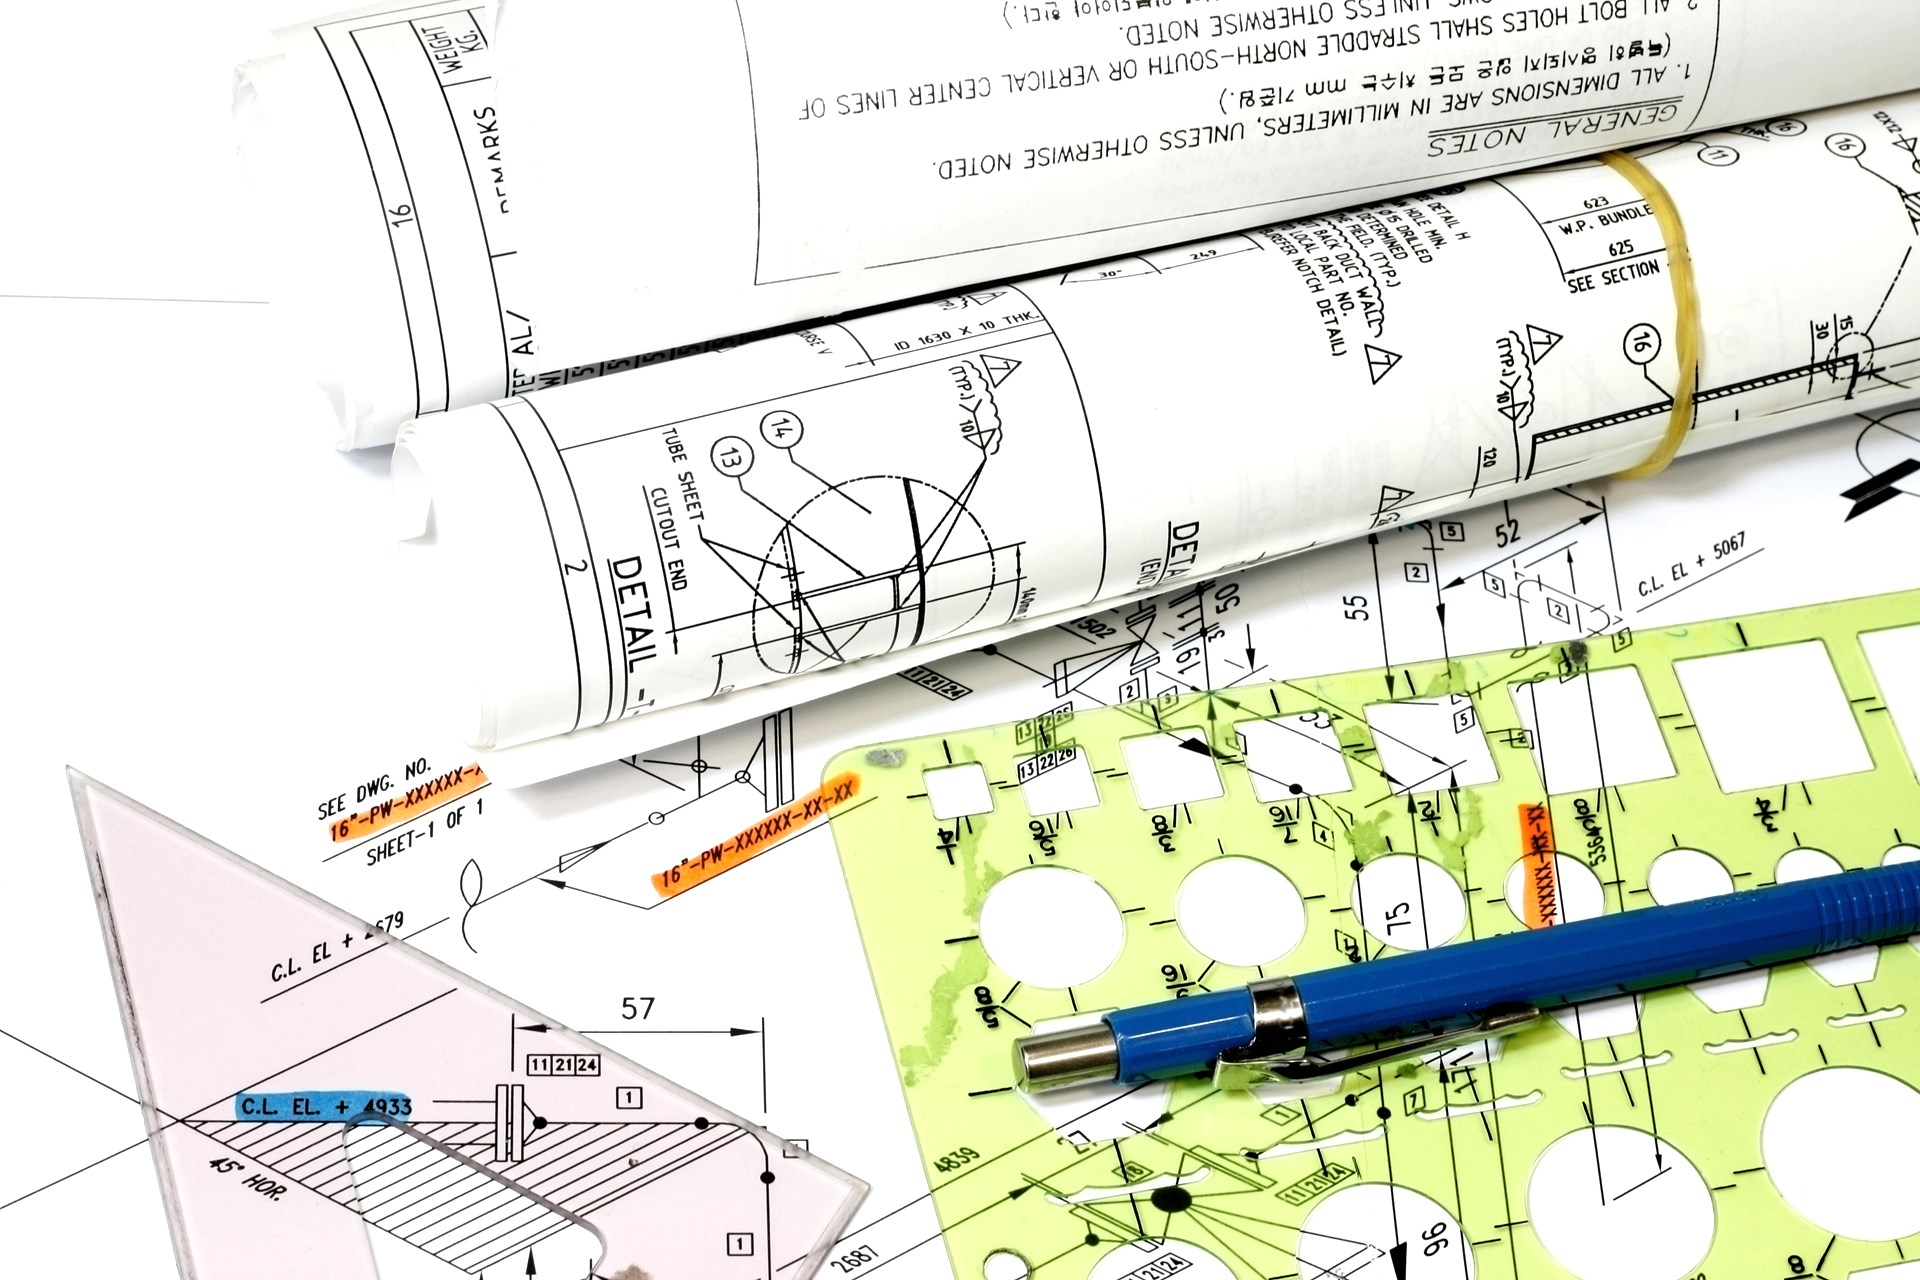 p-id-drawing Electronic Schematics on one-line diagram, electronic manual, electronic pcb, electronic repair, electronic assembly, network analysis, block diagram, digital electronics, electronic symbols, function block diagram, electronic parts, electronic components, electronic blueprints, electronic service, electronic projects, electronic block diagram, electronic amplifier, electronic testing, electronic equipment, integrated circuit layout, electronic wiring, electronic systems, electronic supply, electronic layout, circuit design, wiring diagram, electronic ballast, electronic background,